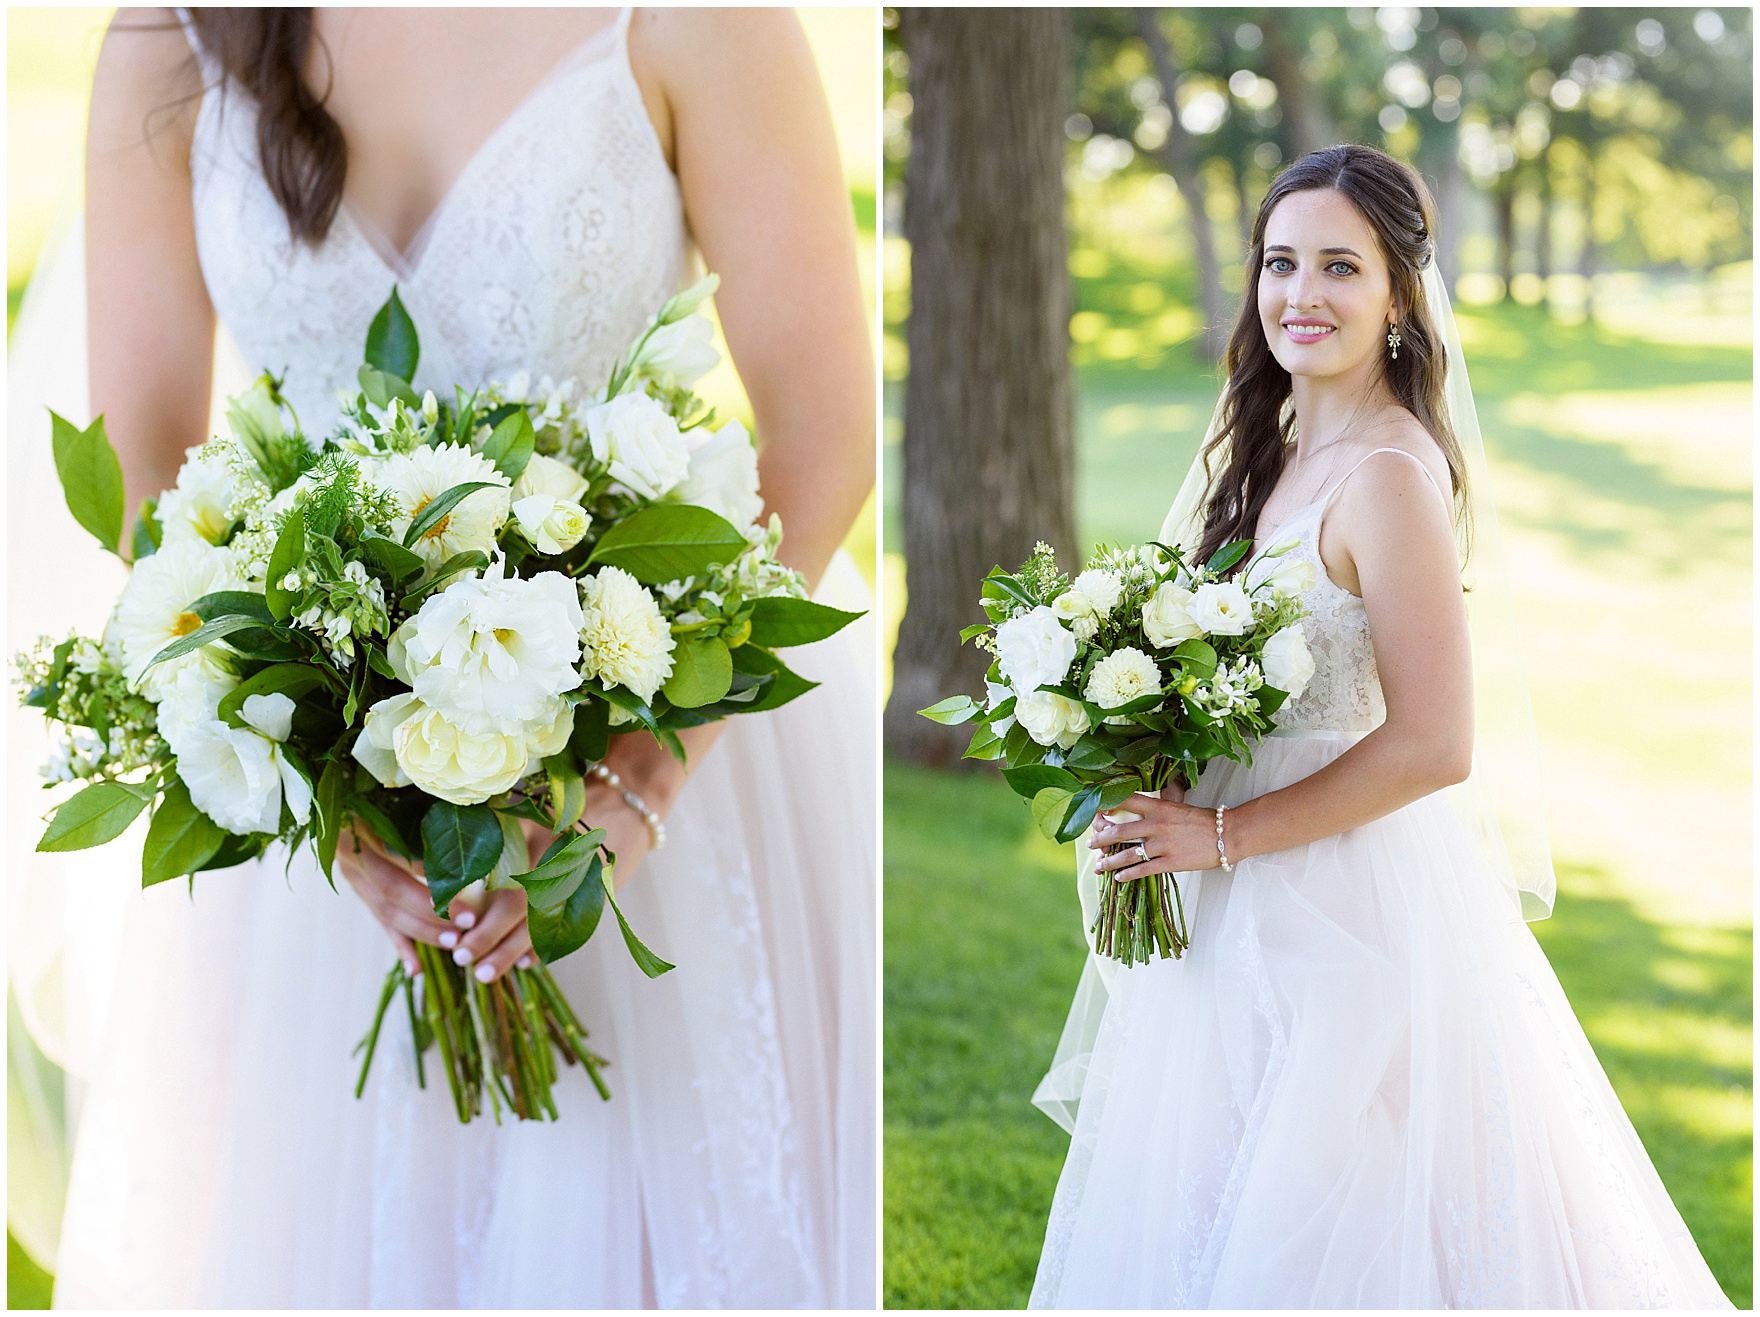 Portrait of a bride holding an ivory and green bouquet by Flowers for Dreams during a Butterfield Country Club wedding.